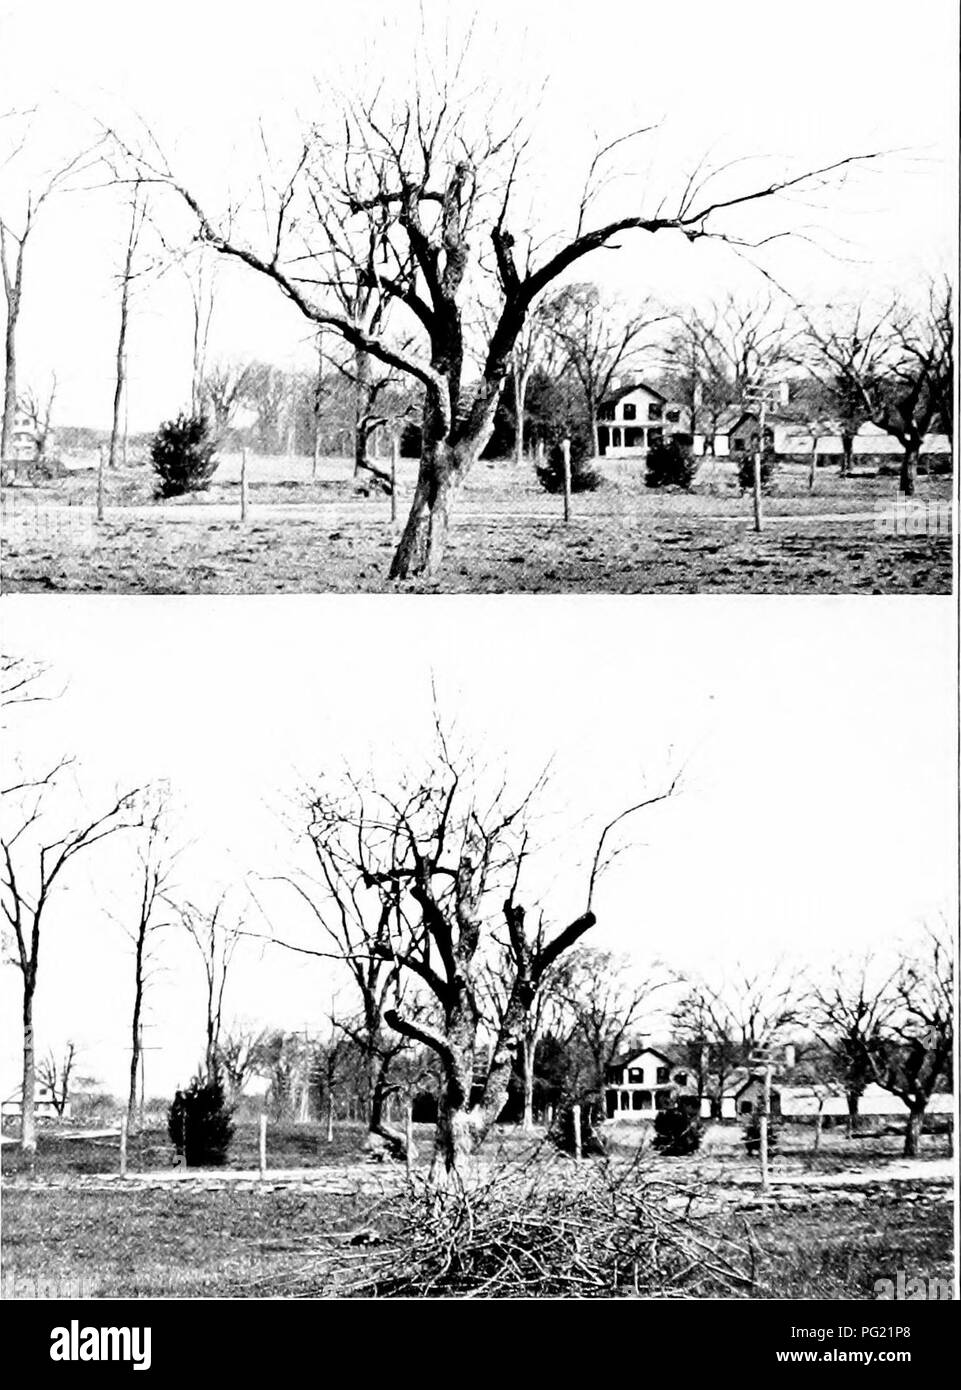 """. Around the year in the garden, a seasonable guide and reminder for work with vegetables, fruits, and flowers, and under glass. Gardening; Vegetable gardening. Plate 29.—New trees from old! Third: Two years later: many, vigorous new, young branches, again beginning to get crowded. Fourth: Pruned again; much of the old wood left the first time, removed; a """" head """" of healthy, young wood, that can be trained into a low, spreading tree, on the old foundation.. Please note that these images are extracted from scanned page images that may have been digitally enhanced for readability - co - Stock Image"""